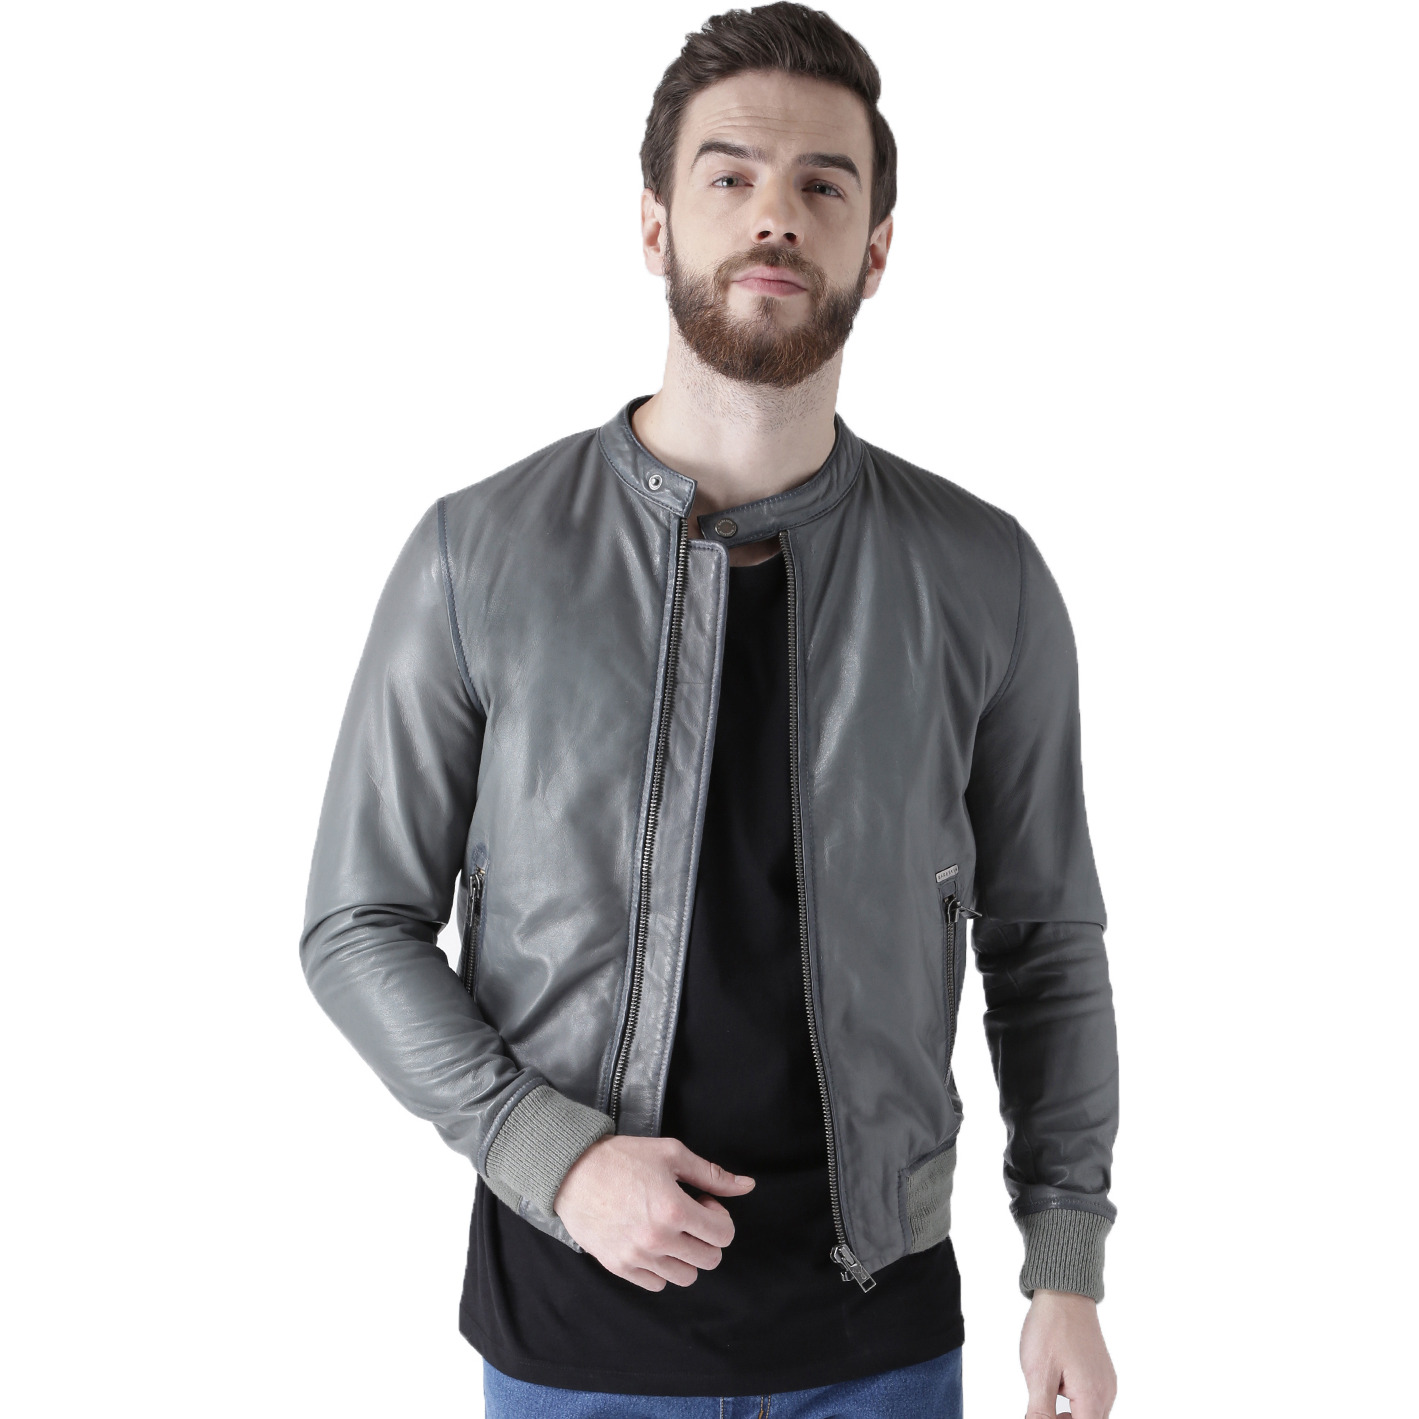 7fb2df8eb3d6 Buy Online Bareskin Mens Grey Color Banned Collar Leather Jacket For Men  from USA - Zifiti.com - Page